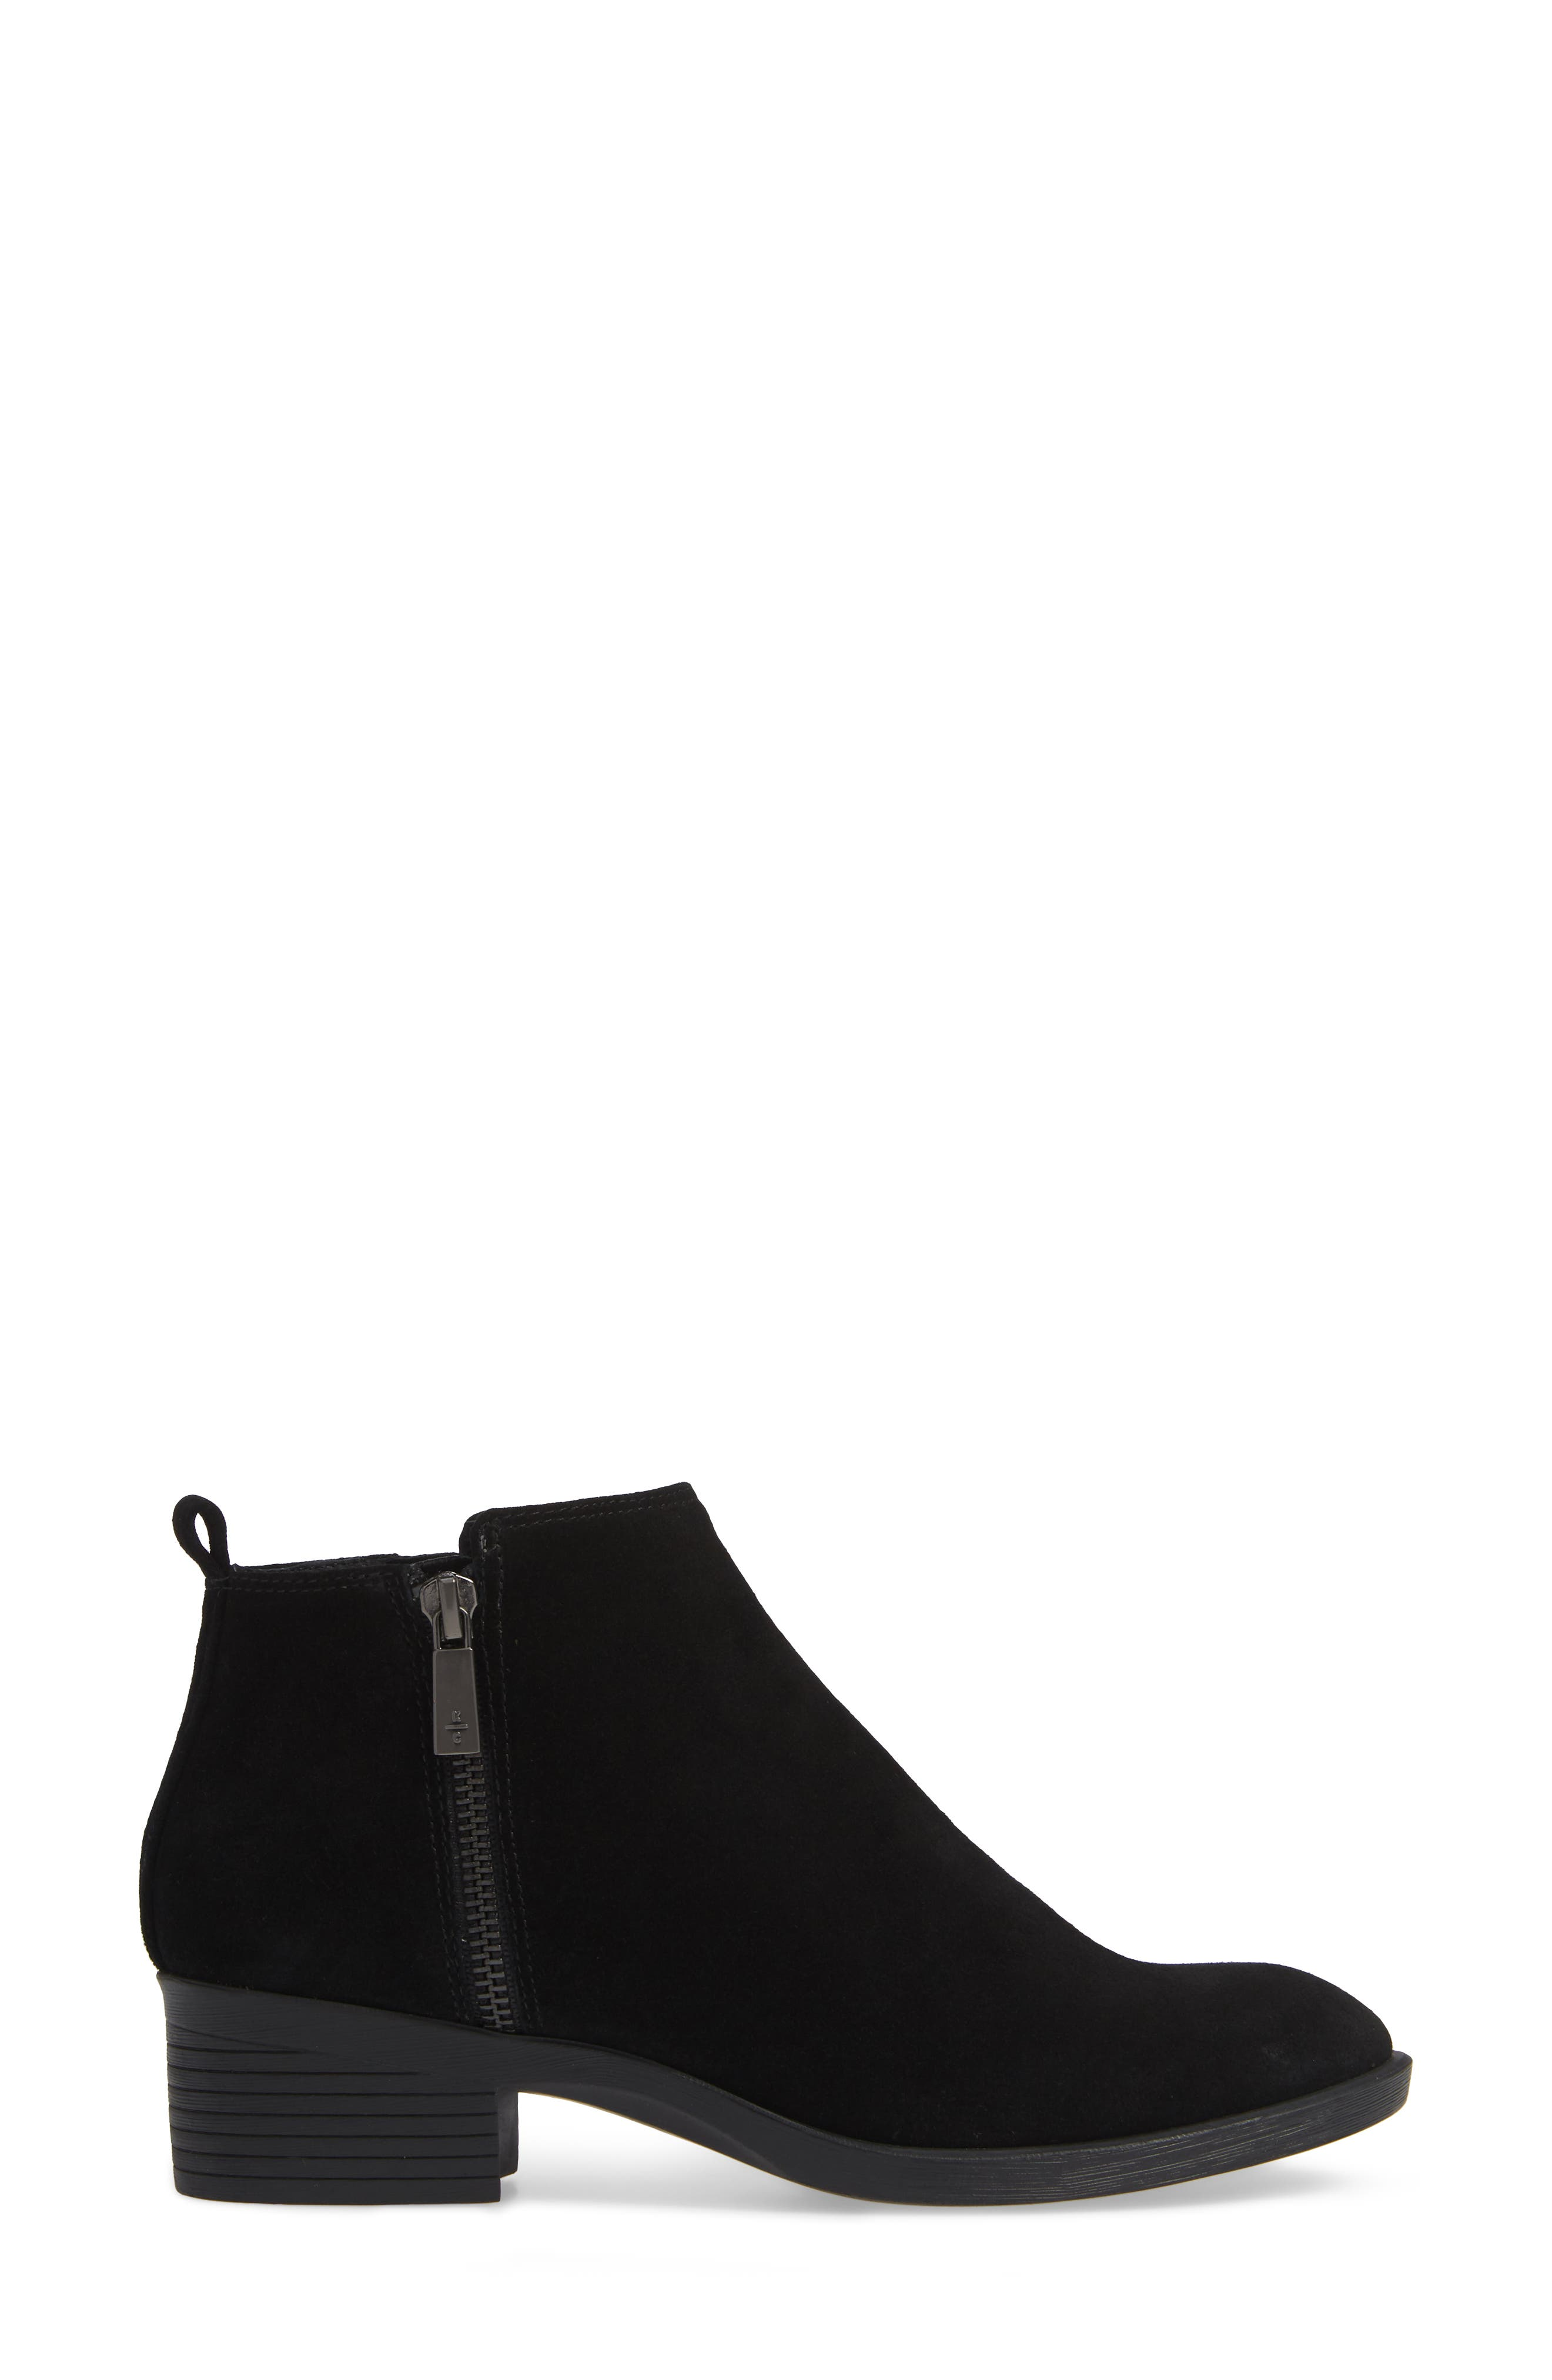 'Levon' Bootie,                             Alternate thumbnail 3, color,                             BLACK SUEDE